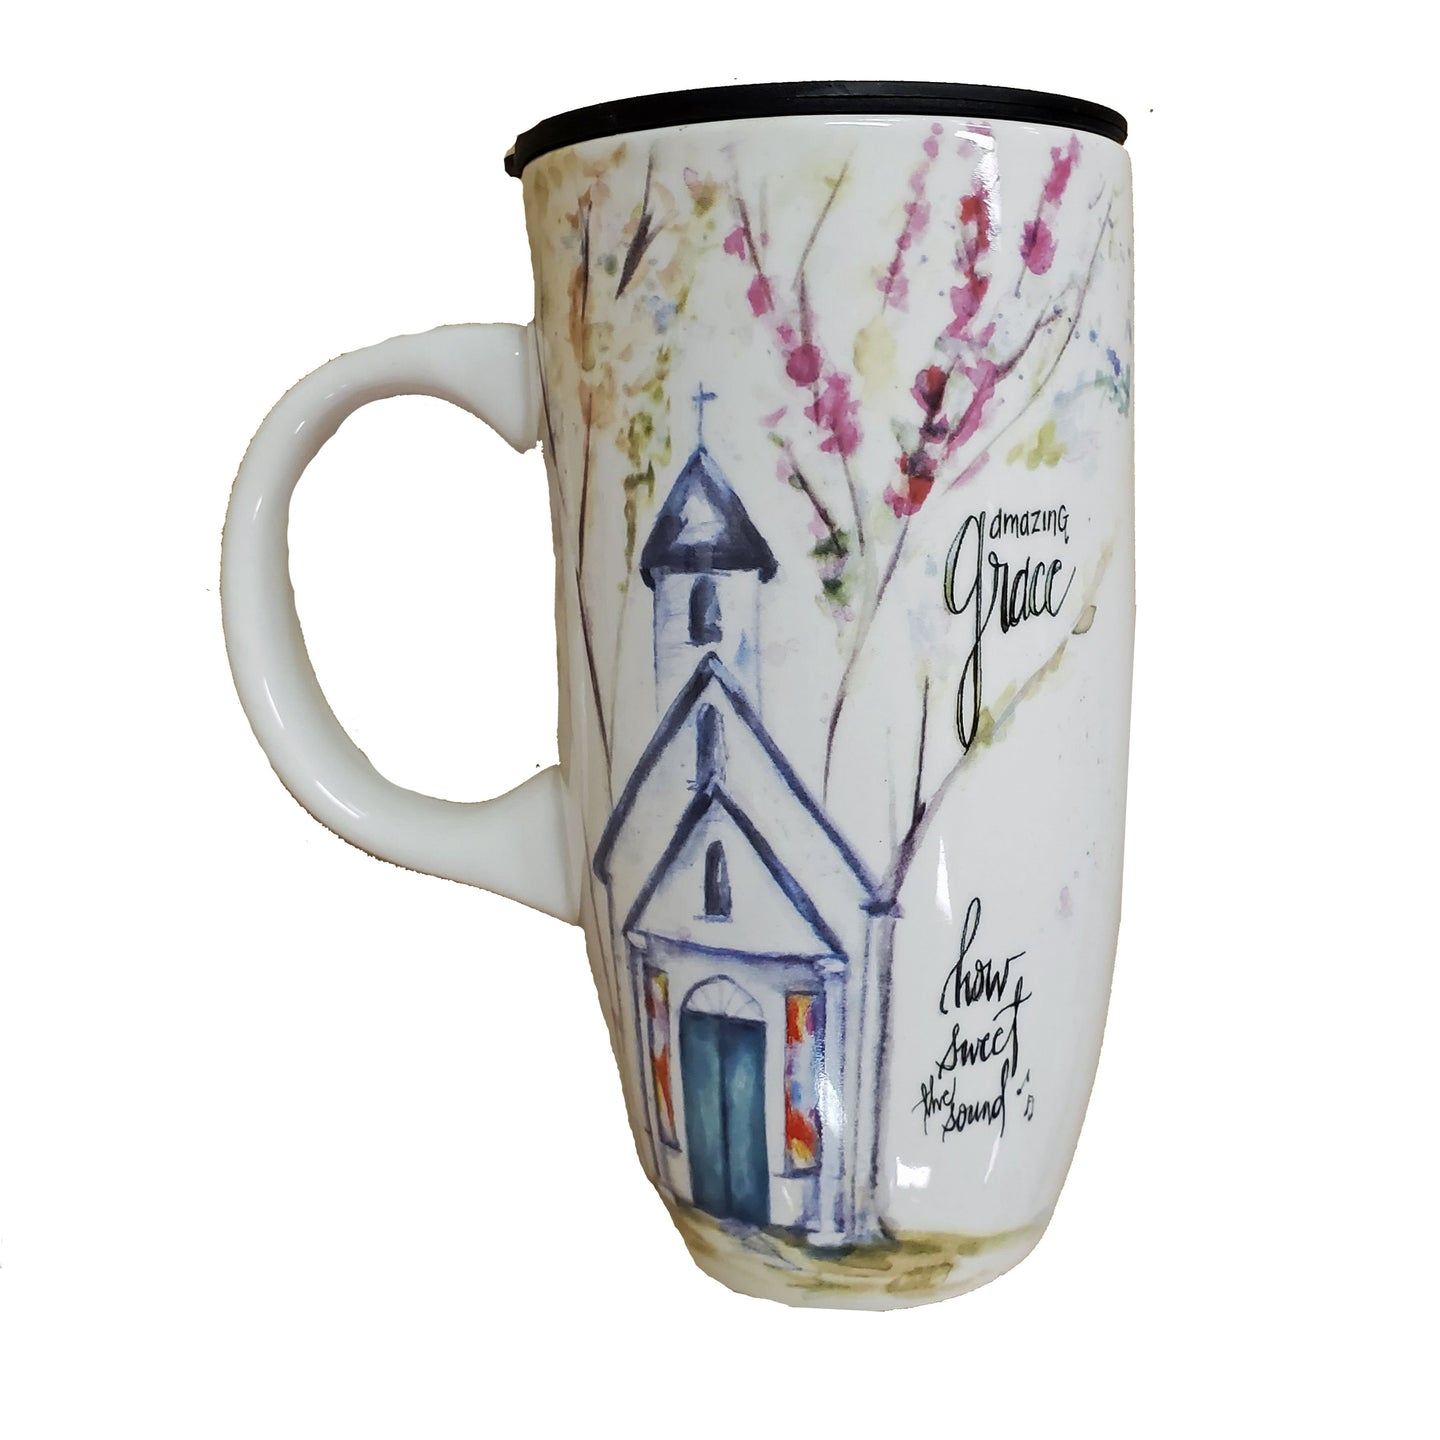 TM28 Travel Mug Amazing Grace